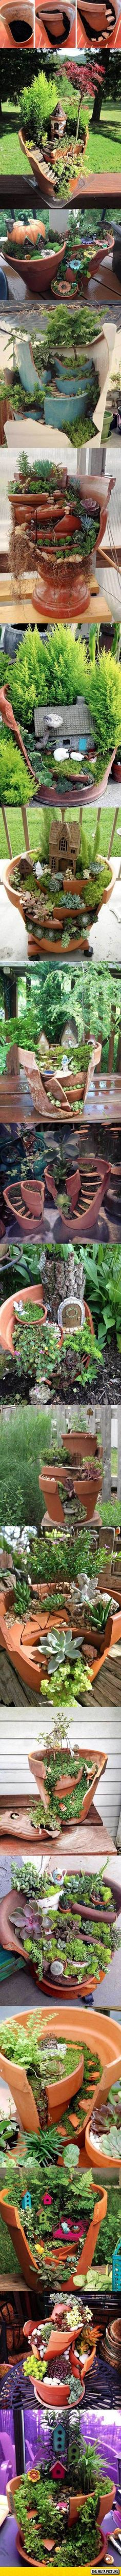 Nice 23 Diy Fairy Garden Ideas Homemade ideacoration.co/... You end up getting a 3 tiered garden look which is both stunning and space saving.